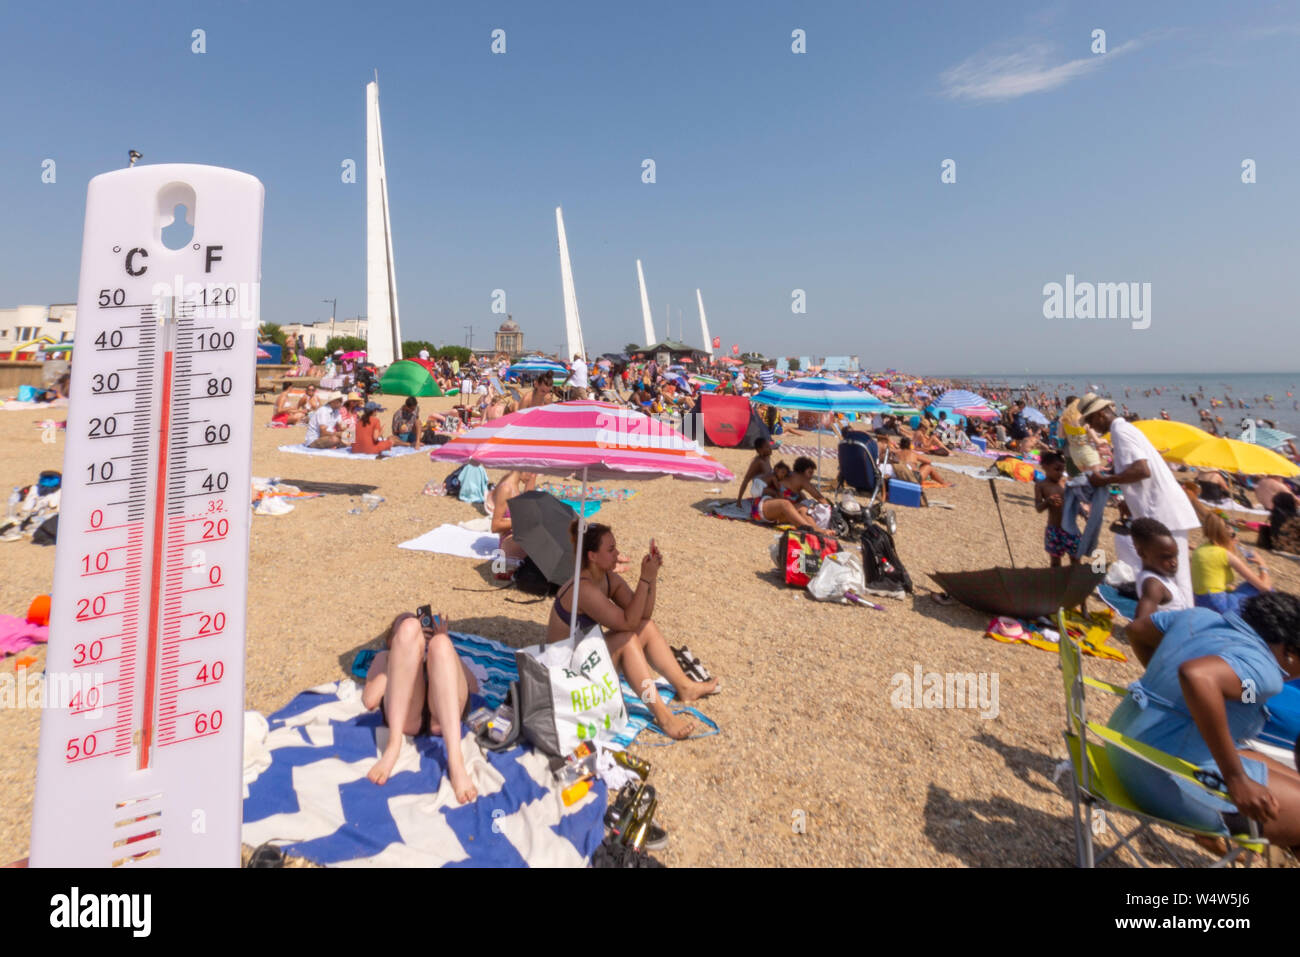 seafront-southend-on-sea-essex-uk-with-the-forecast-record-temperatures-people-are-heading-to-the-seafront-to-cool-down-the-towns-jubilee-beach-is-busy-with-the-mercury-in-the-high-thirties-temperatures-almost-reached-record-levels-thermometer-illustrating-temperature-W4W5J6.jpg